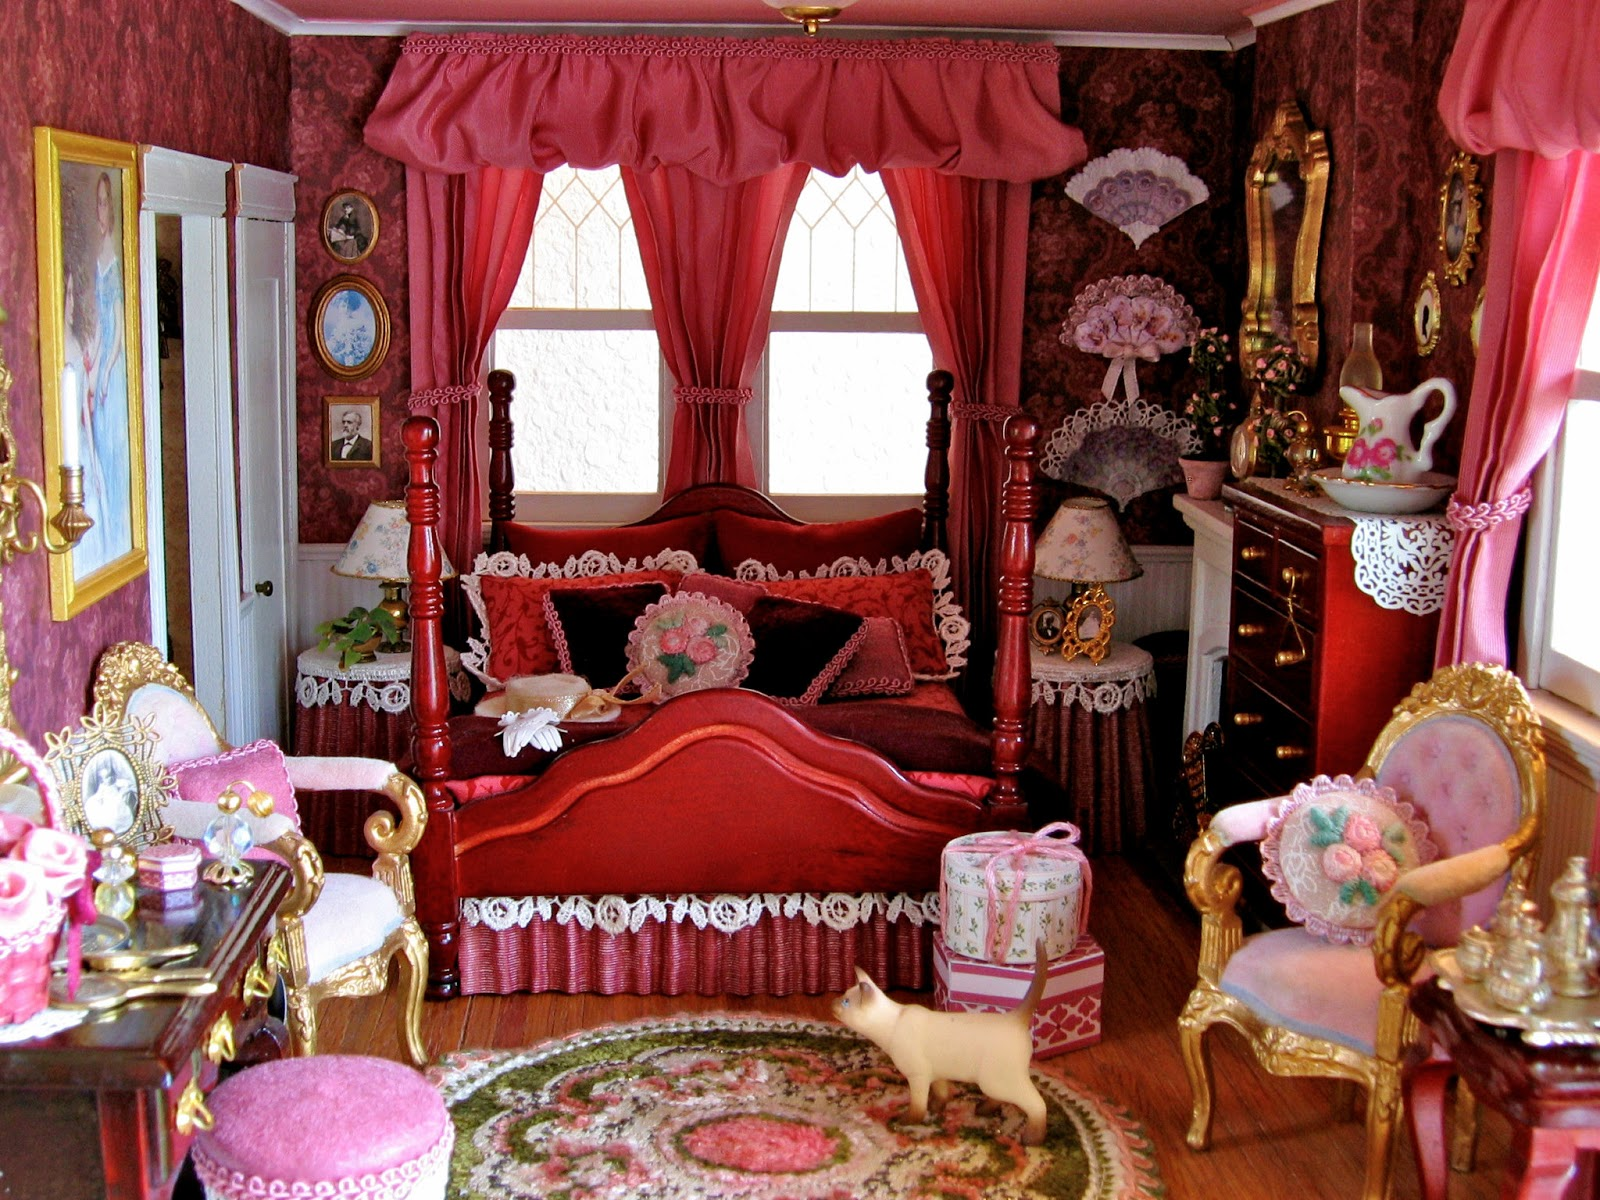 Victorian Dollhouse Bedroom And Bathroom, 1:12 Scale Miniatures, Pt 4